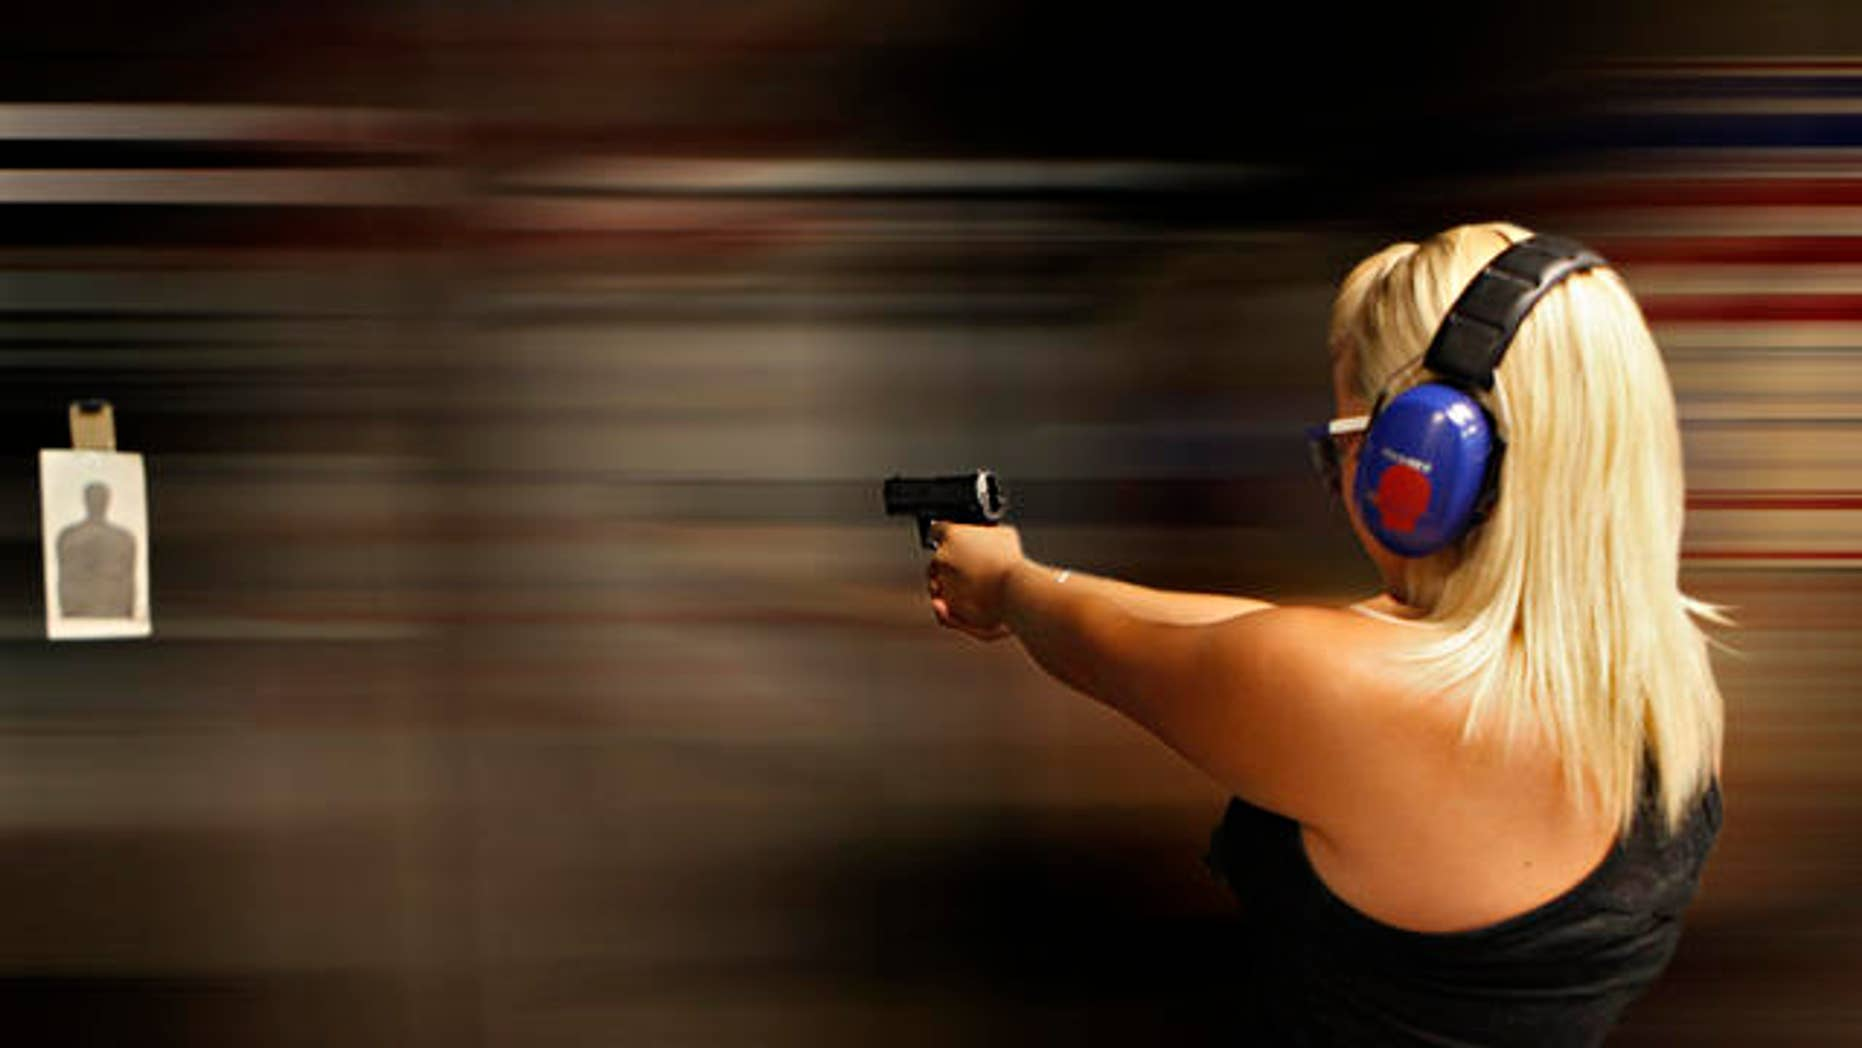 Sarah Bard, of Gilbert, shoots at Caswells Shooting Range, Tuesday, April 6, 2010 in Mesa, Ariz. in preparation for her upcoming concealed weapons test. Gov. Jan Brewer has signed into law two bills supported by gun-rights activists. One of the bills signed Monday would broaden the state's current restrictions on local governments' ability to regulate or tax guns and ammunition. (AP Photo/Matt York)